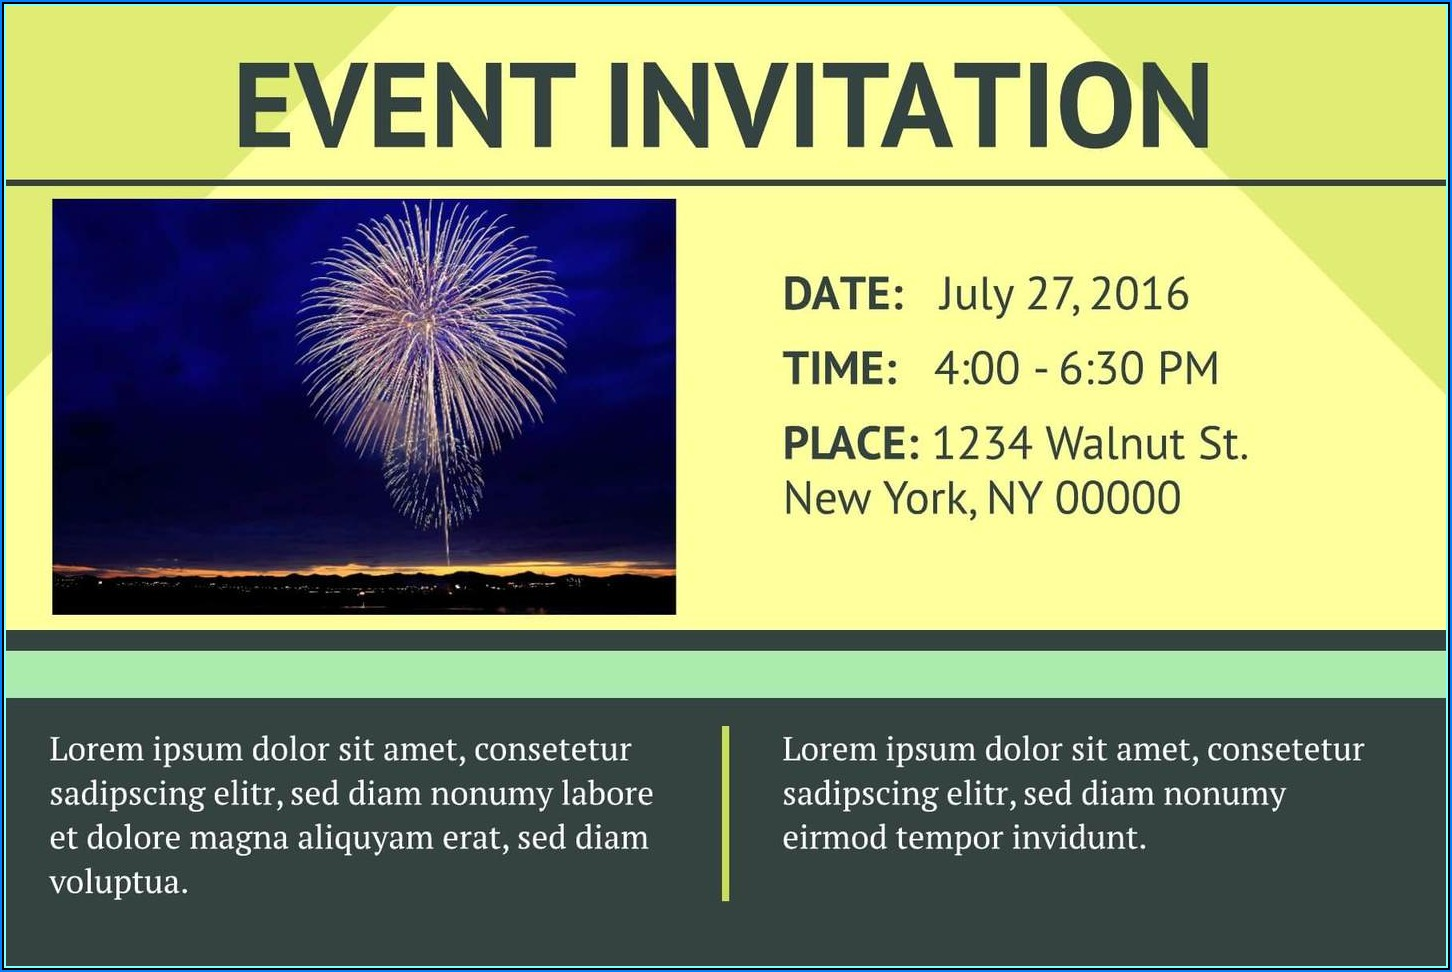 Event Invitation Card Template Free Download